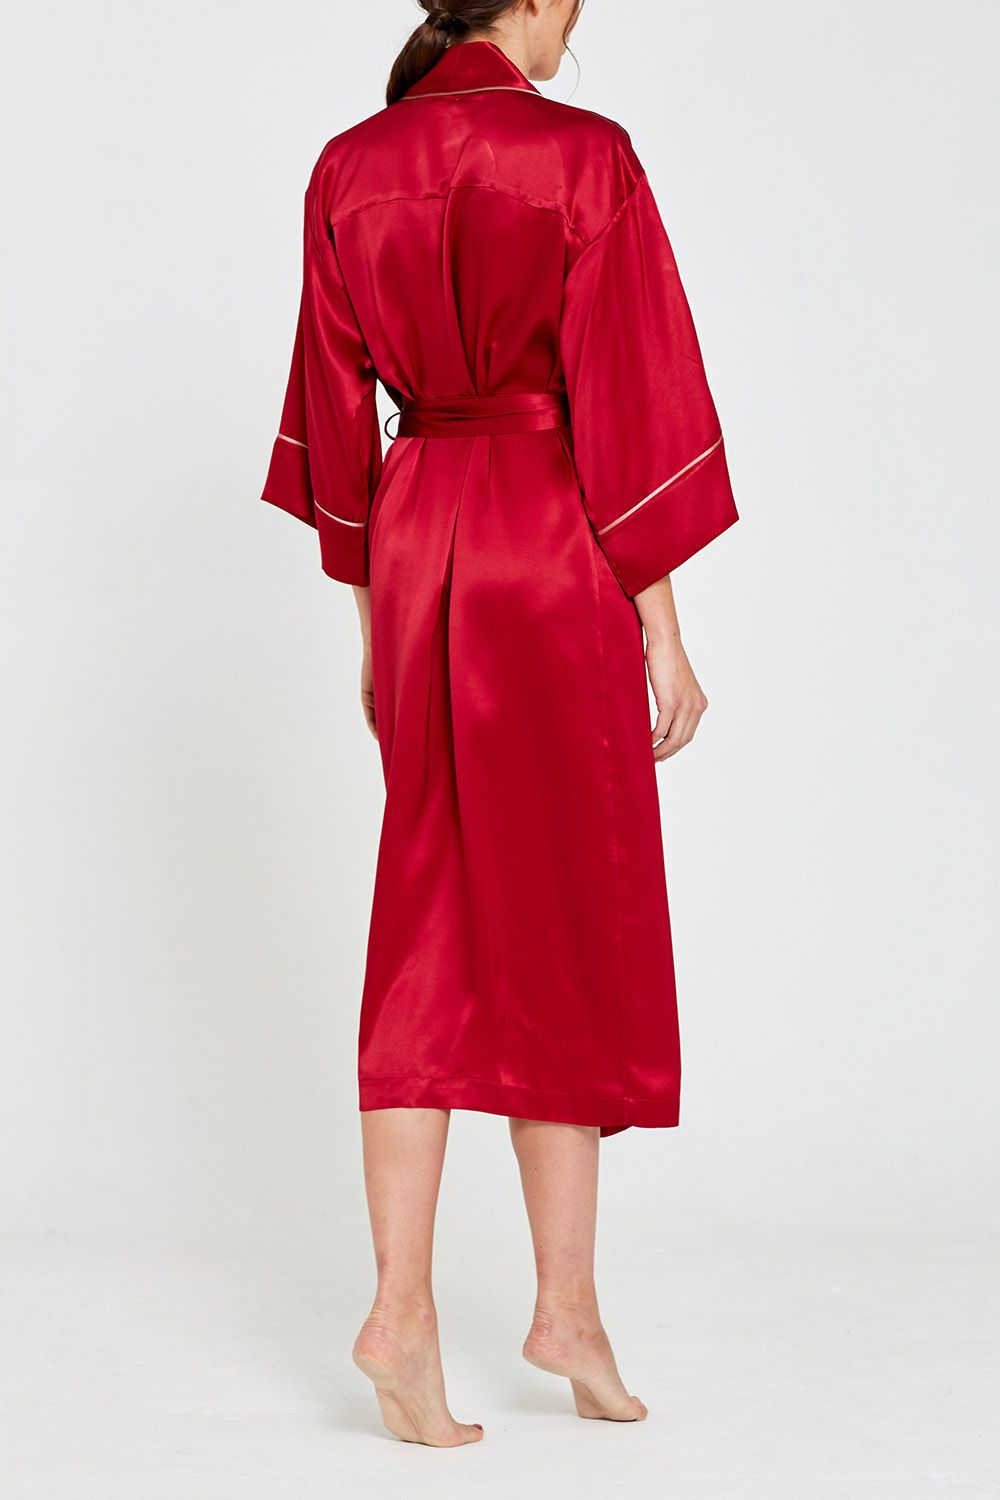 Paloma Silk Full Length Robe Garnet Back